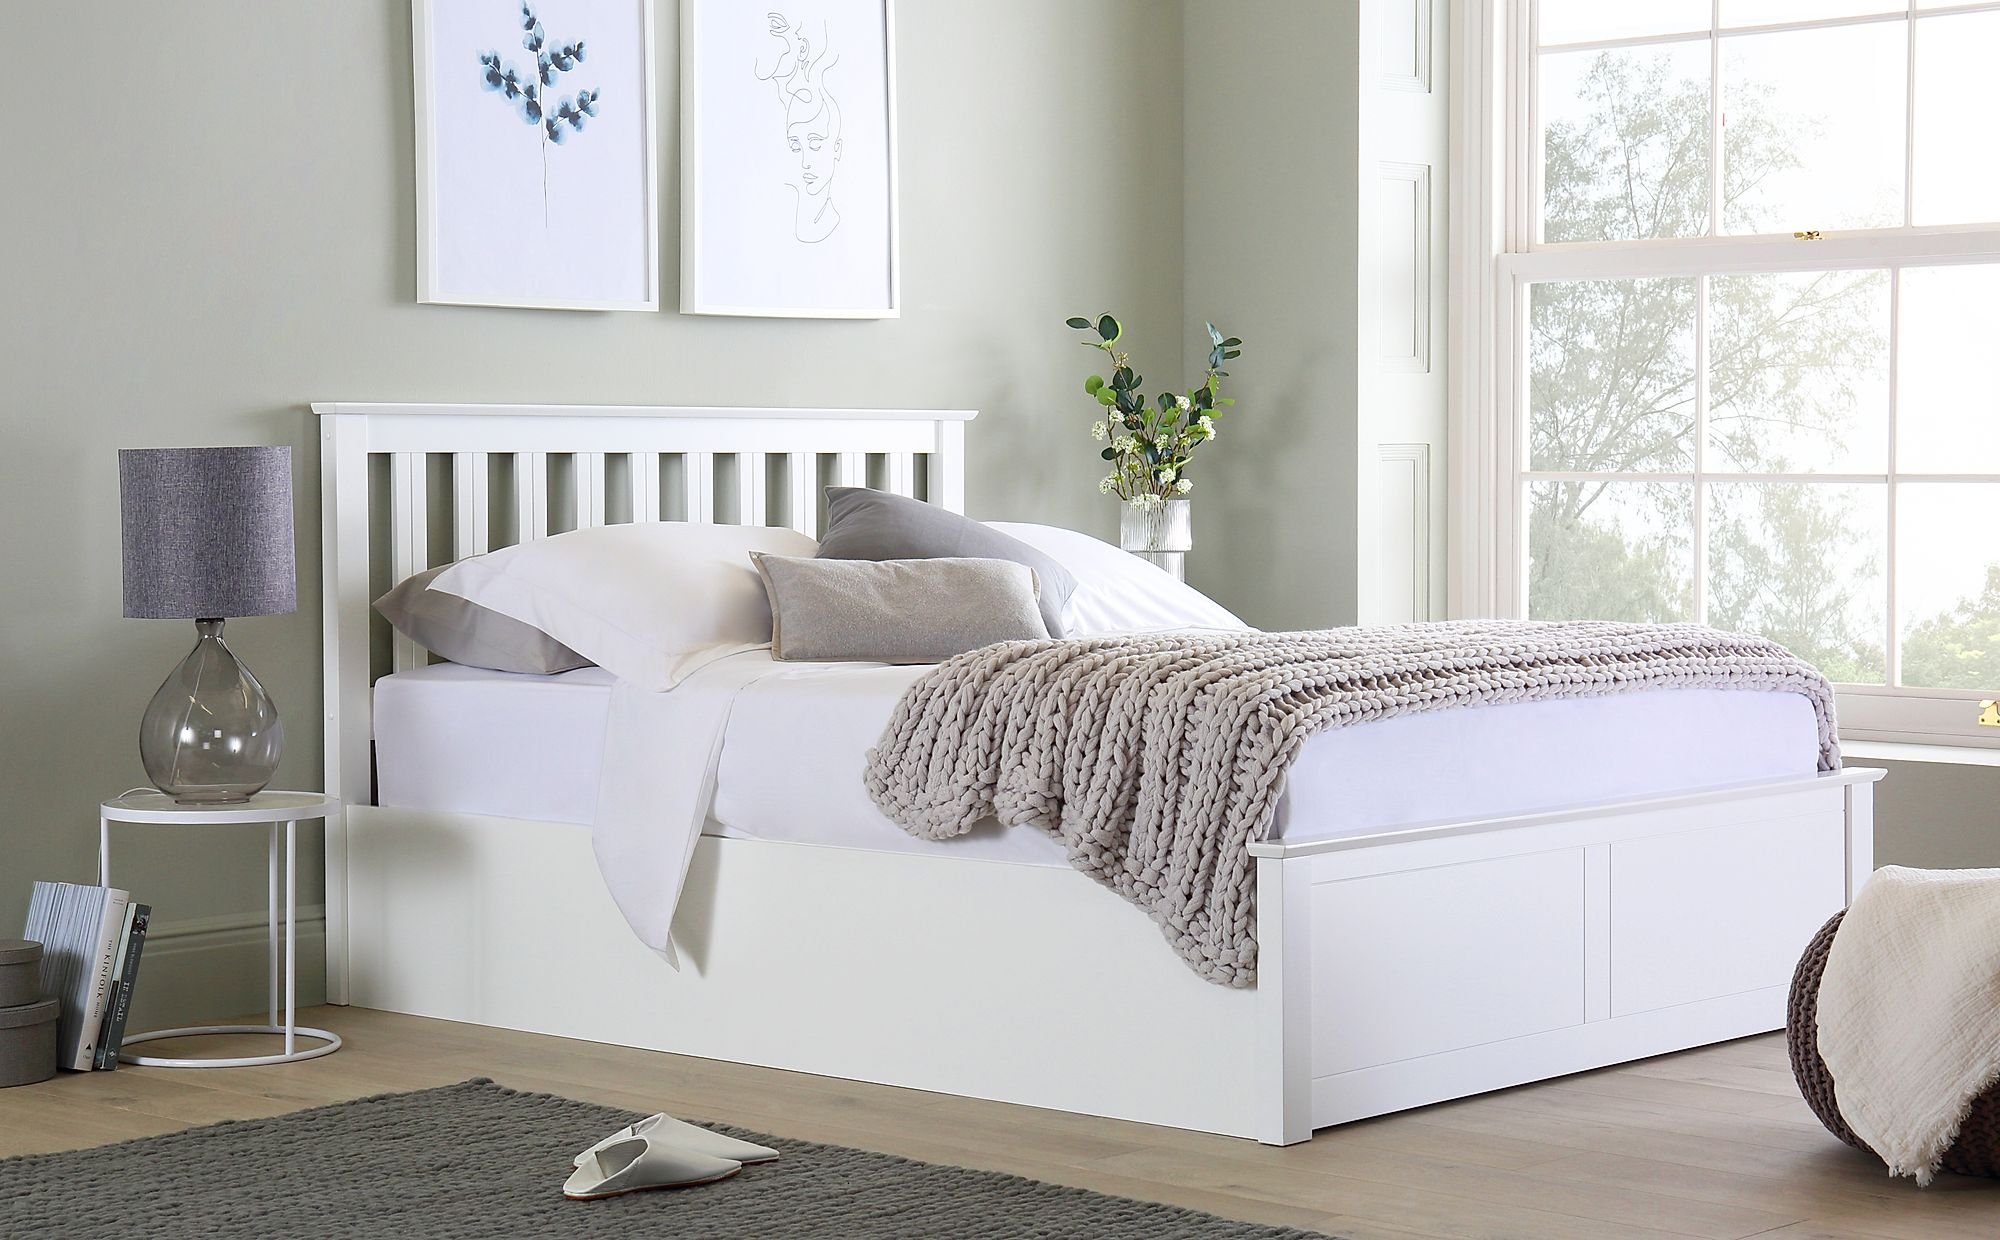 Phoenix White Wooden Ottoman Storage Bed Bed King Size